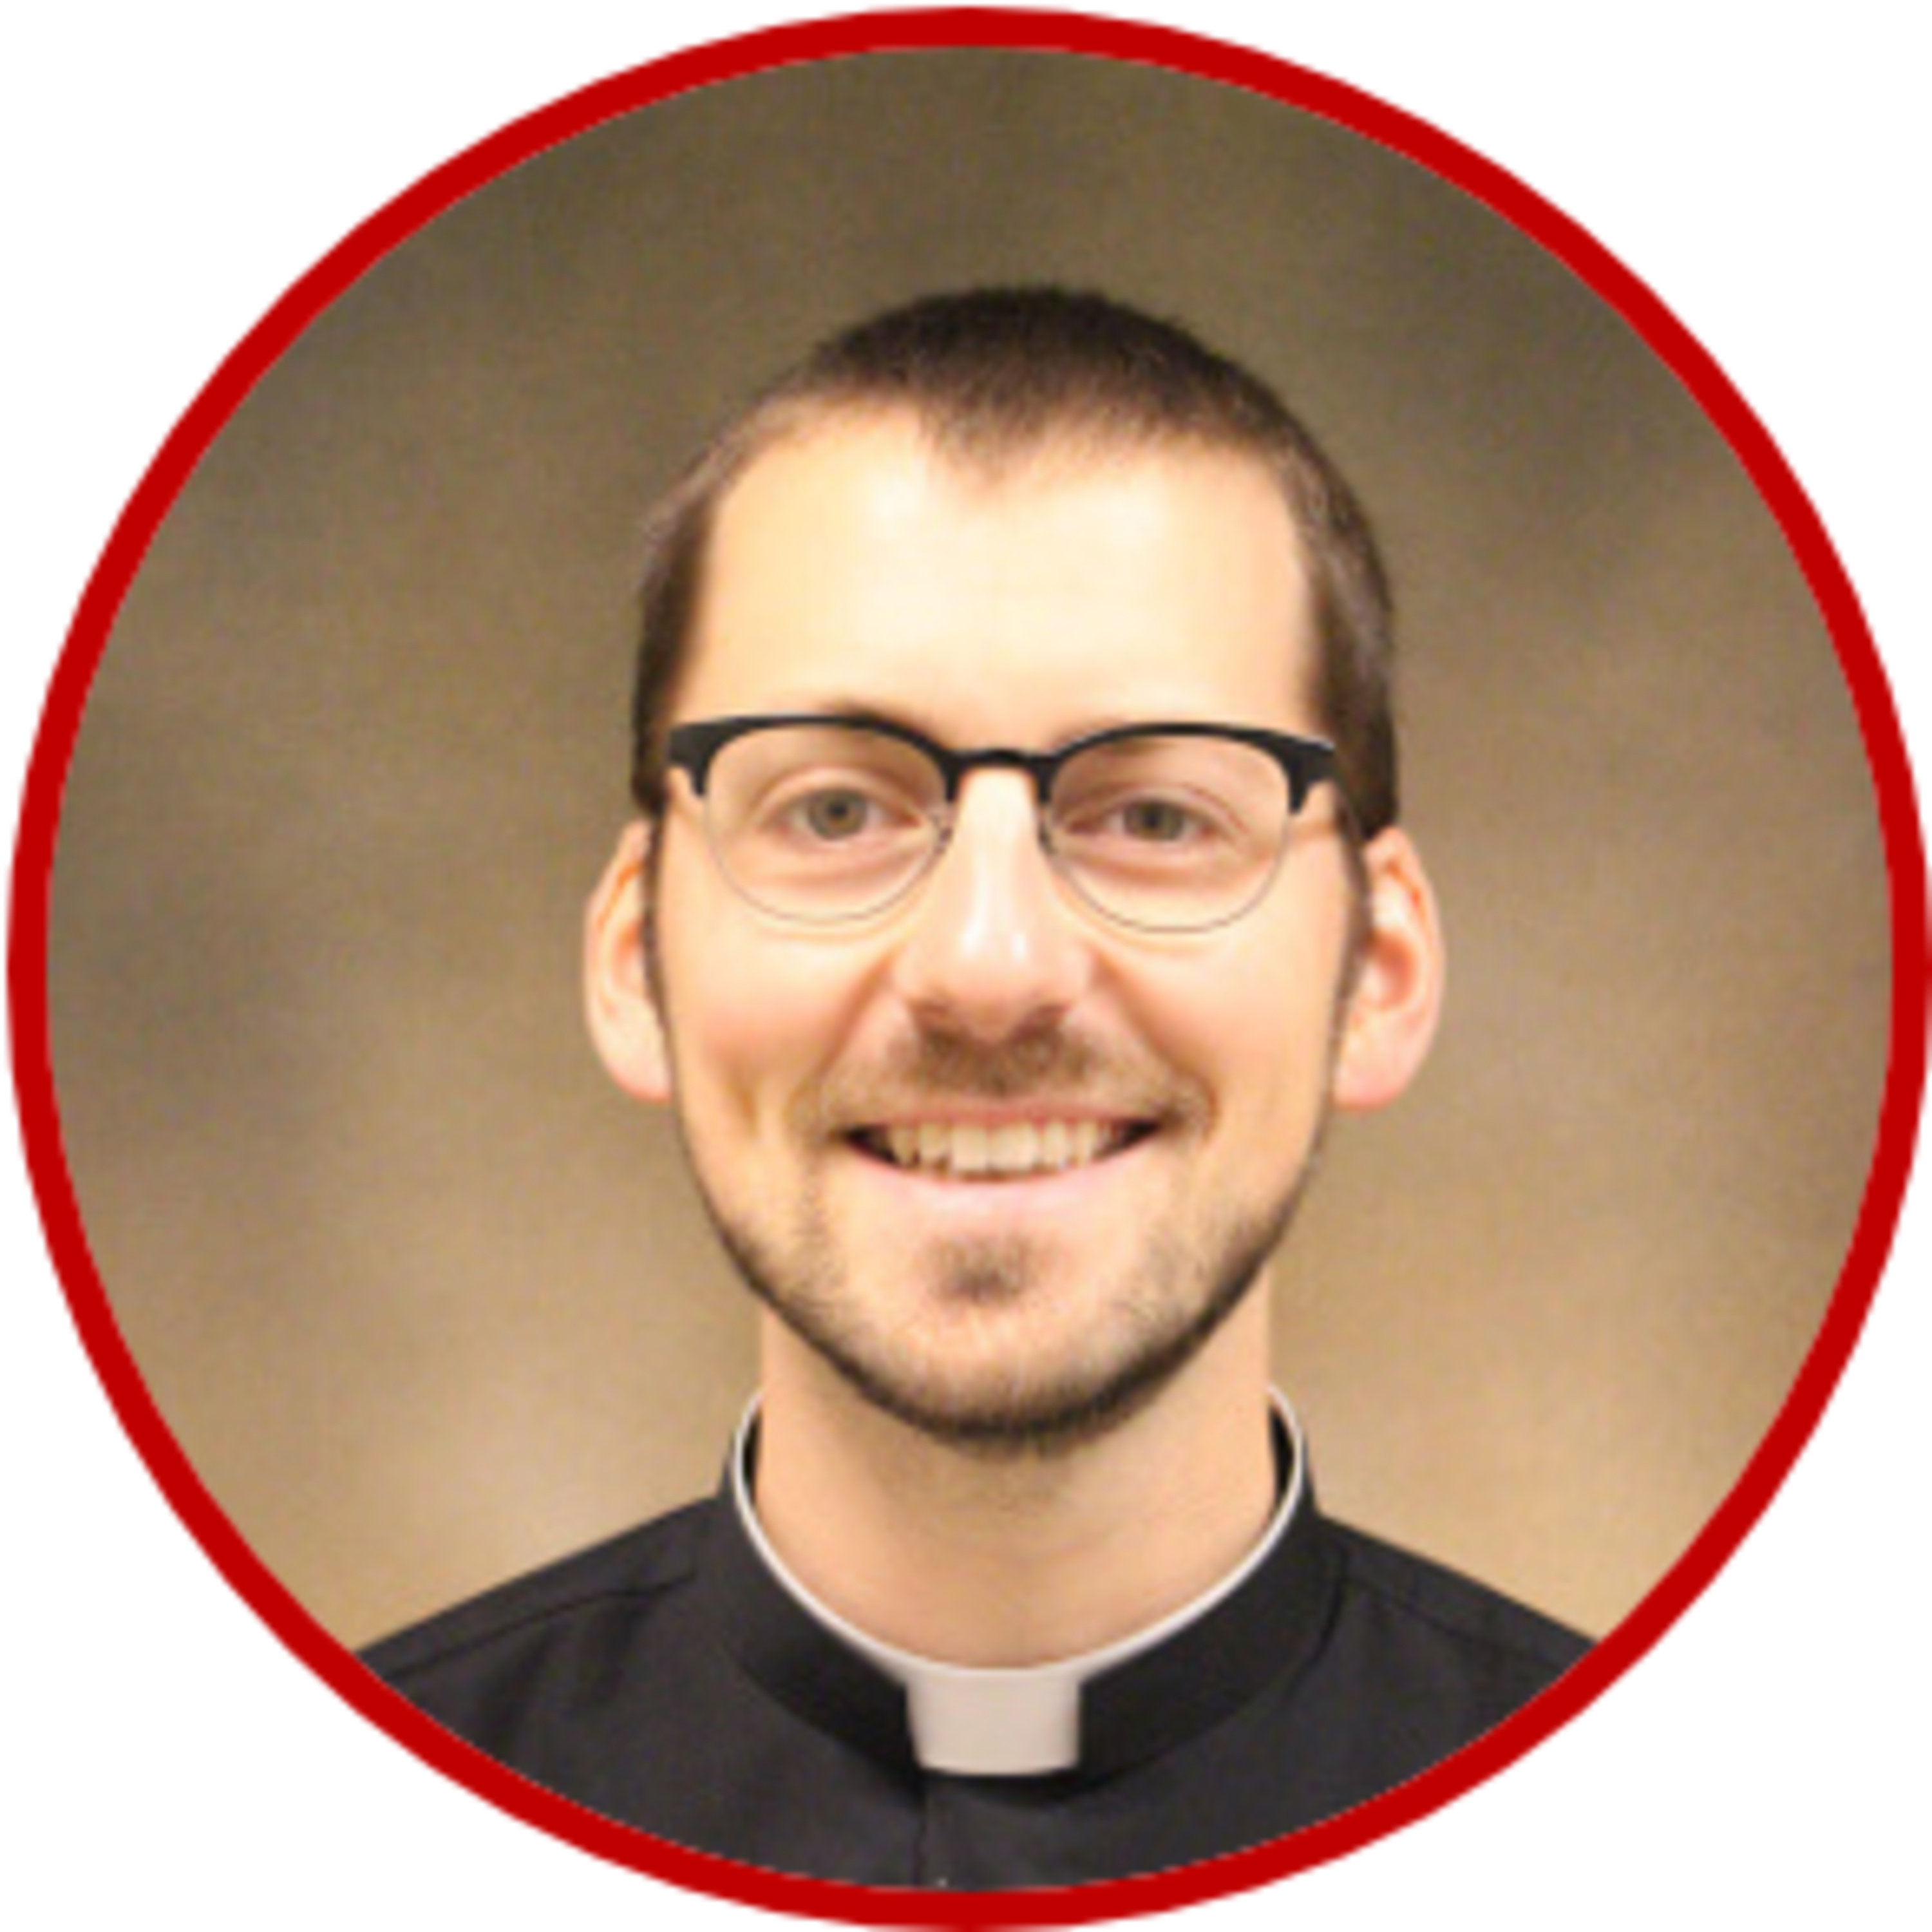 30th Sunday in Ordinary Time: Fr. Christian DeCarlo